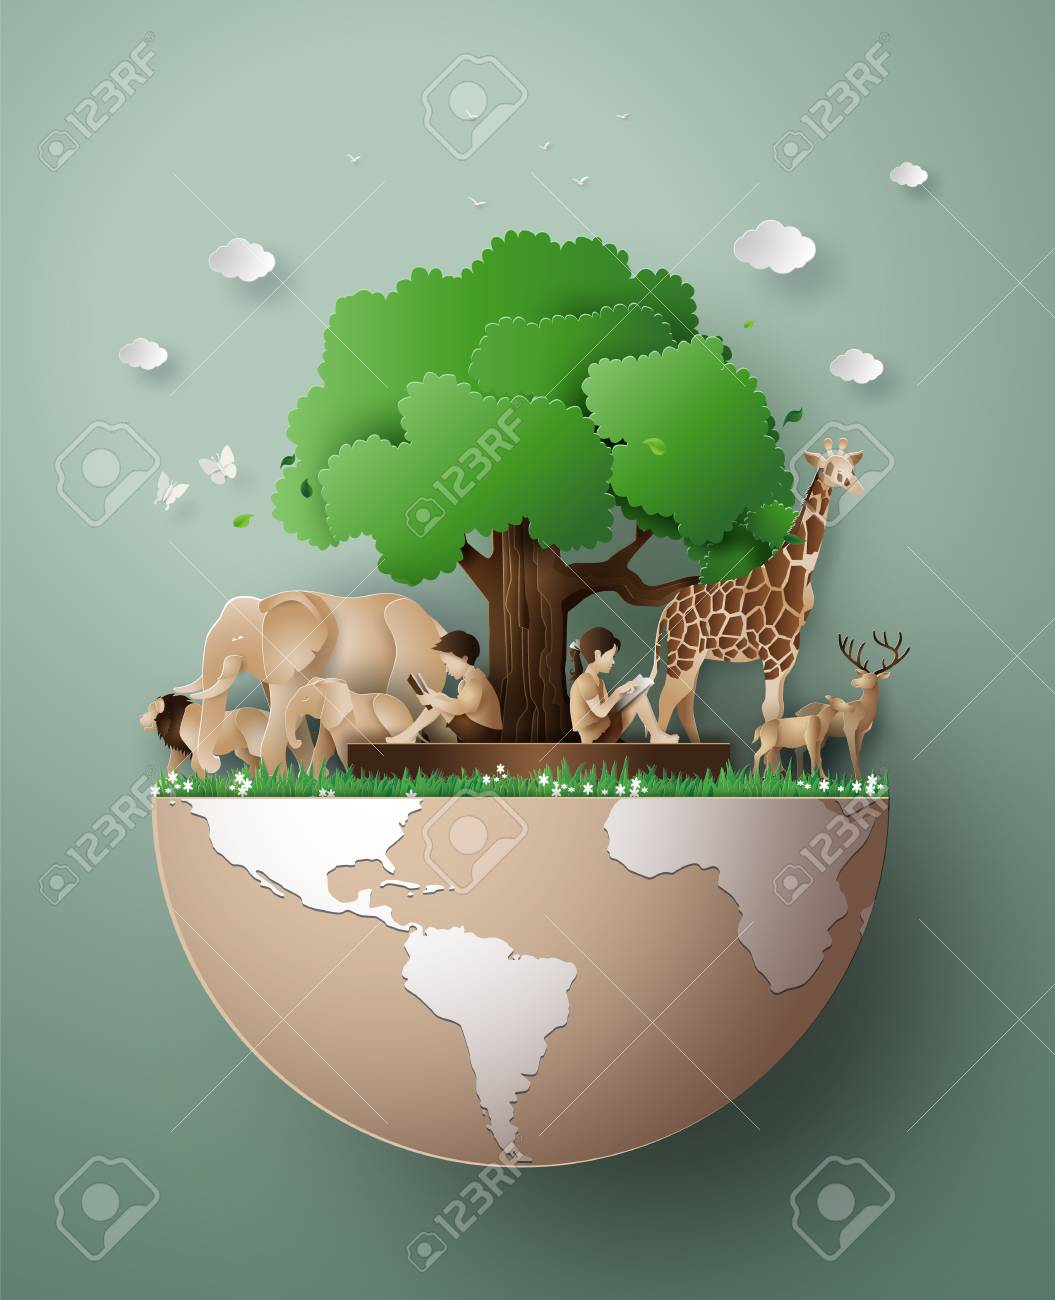 World Wildlife Day with the animal in forest , Paper art and digital craft style. - 119957094